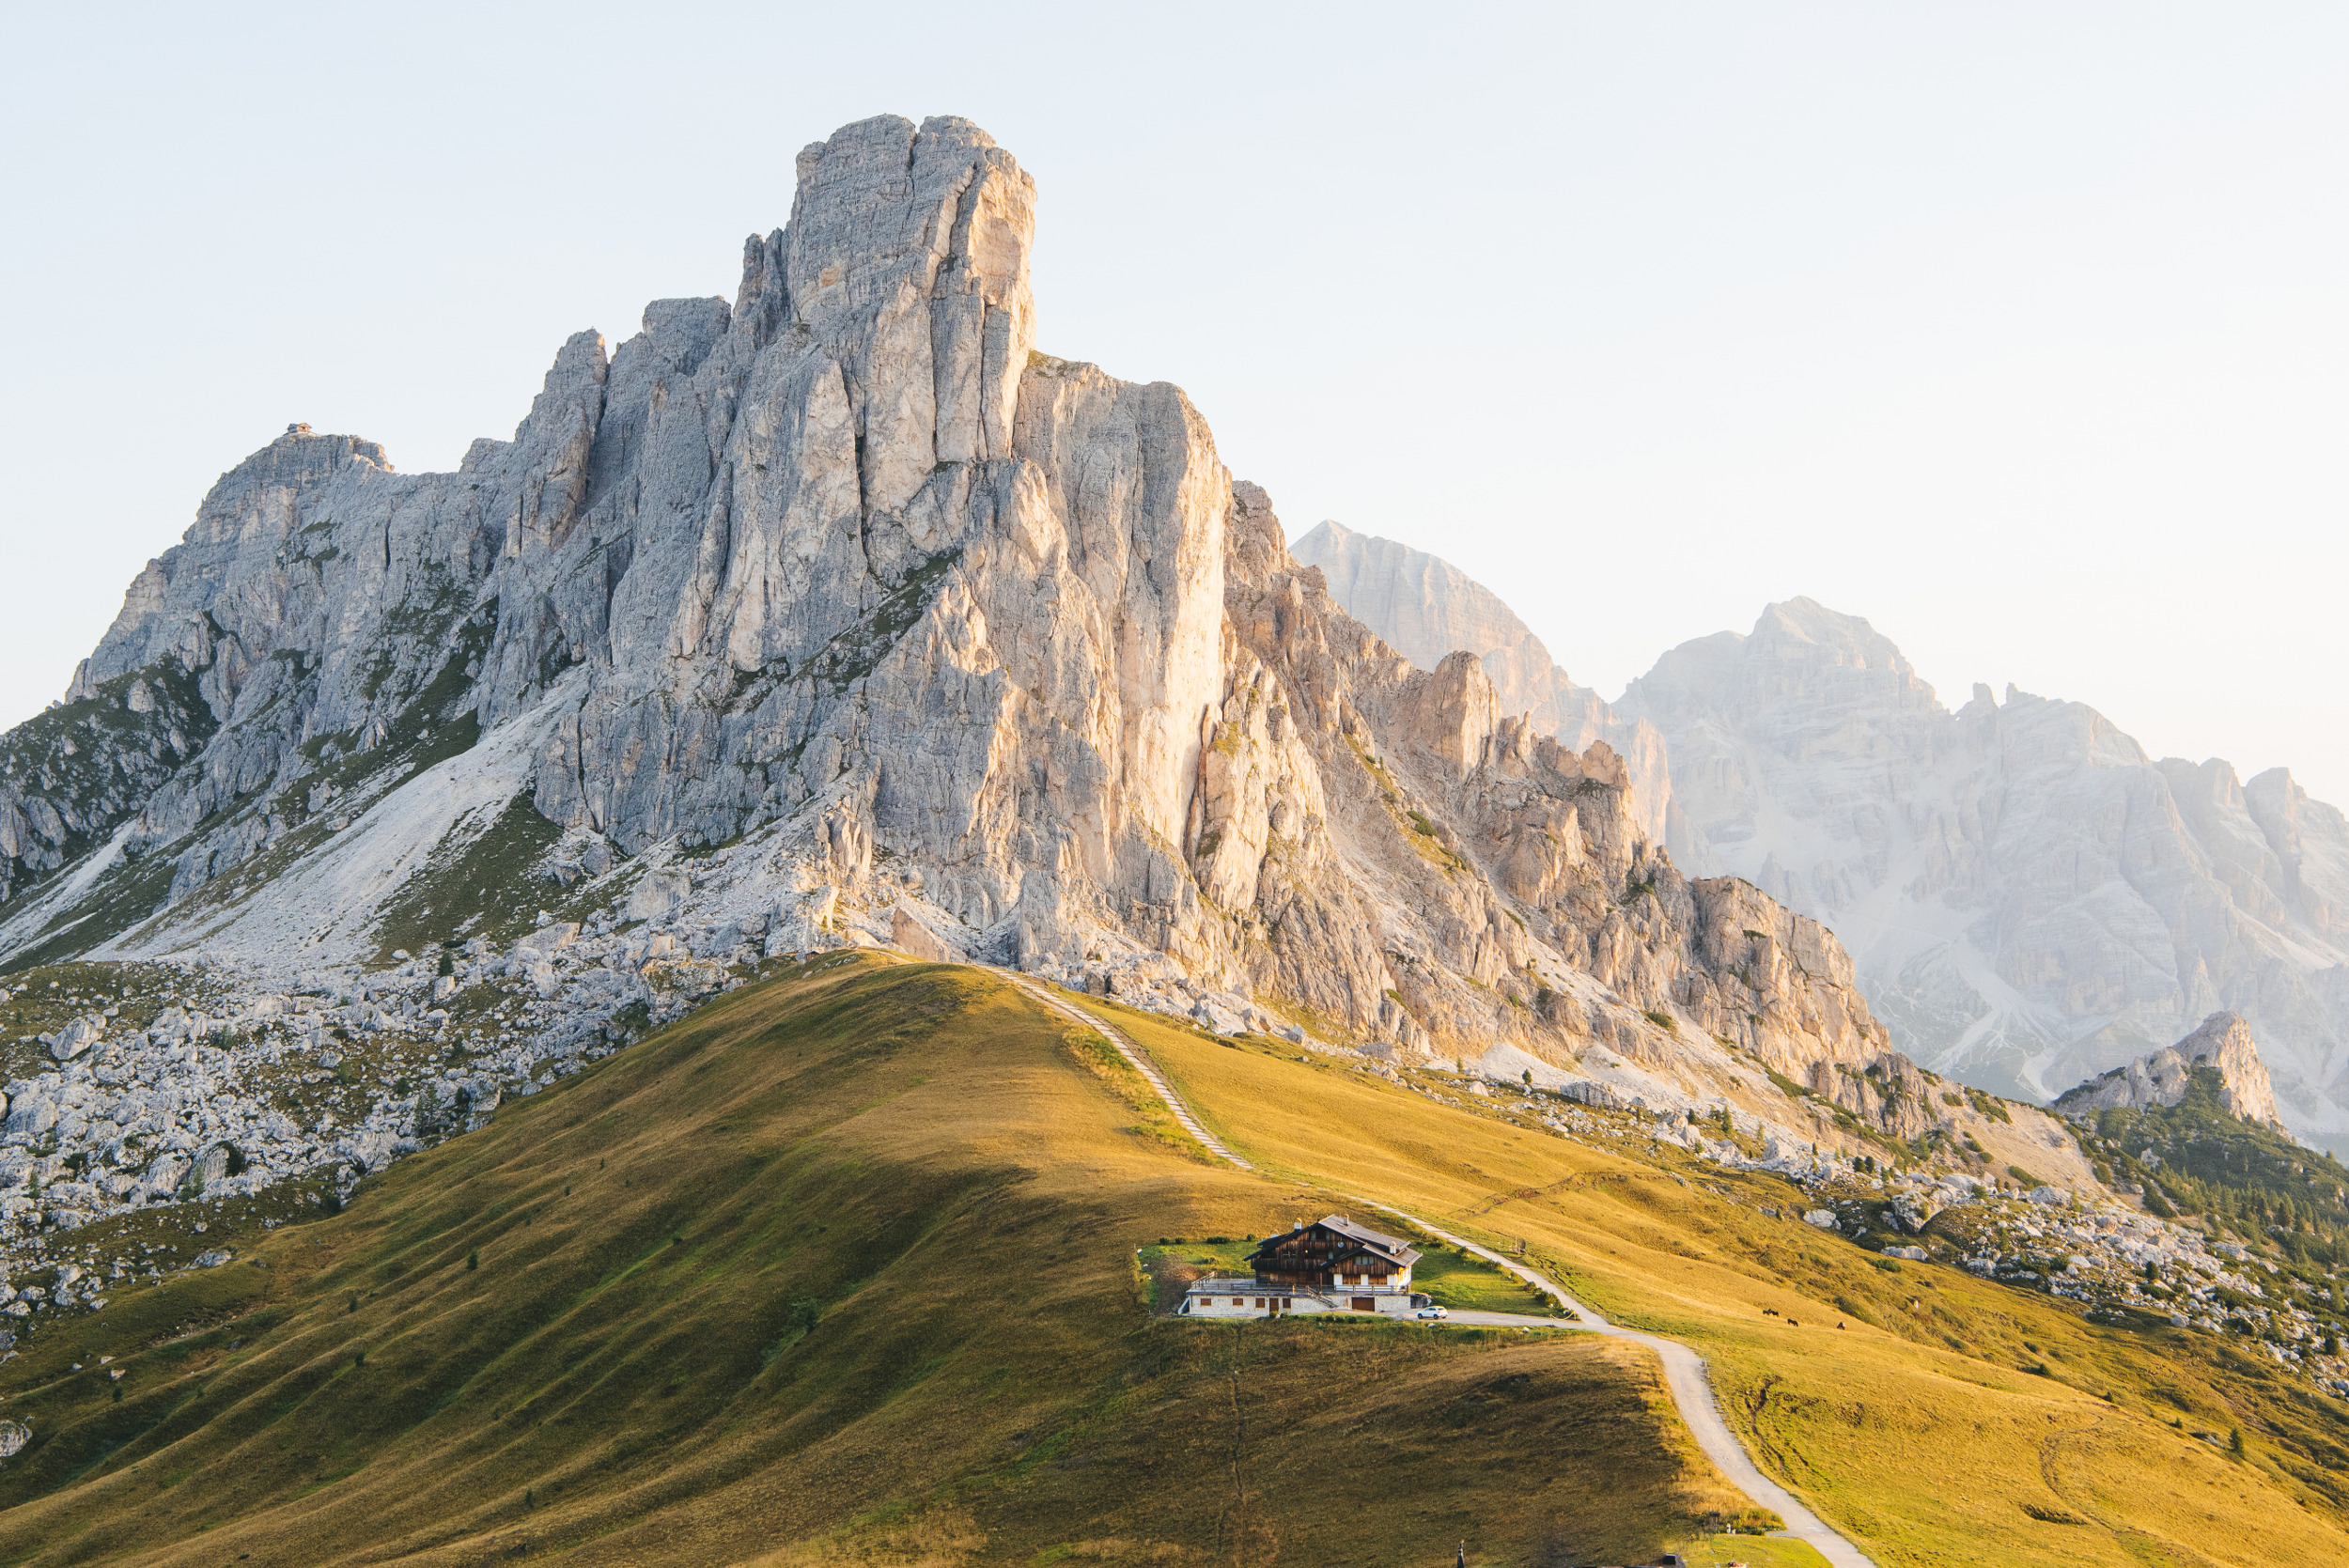 The Dolomites in Italy.